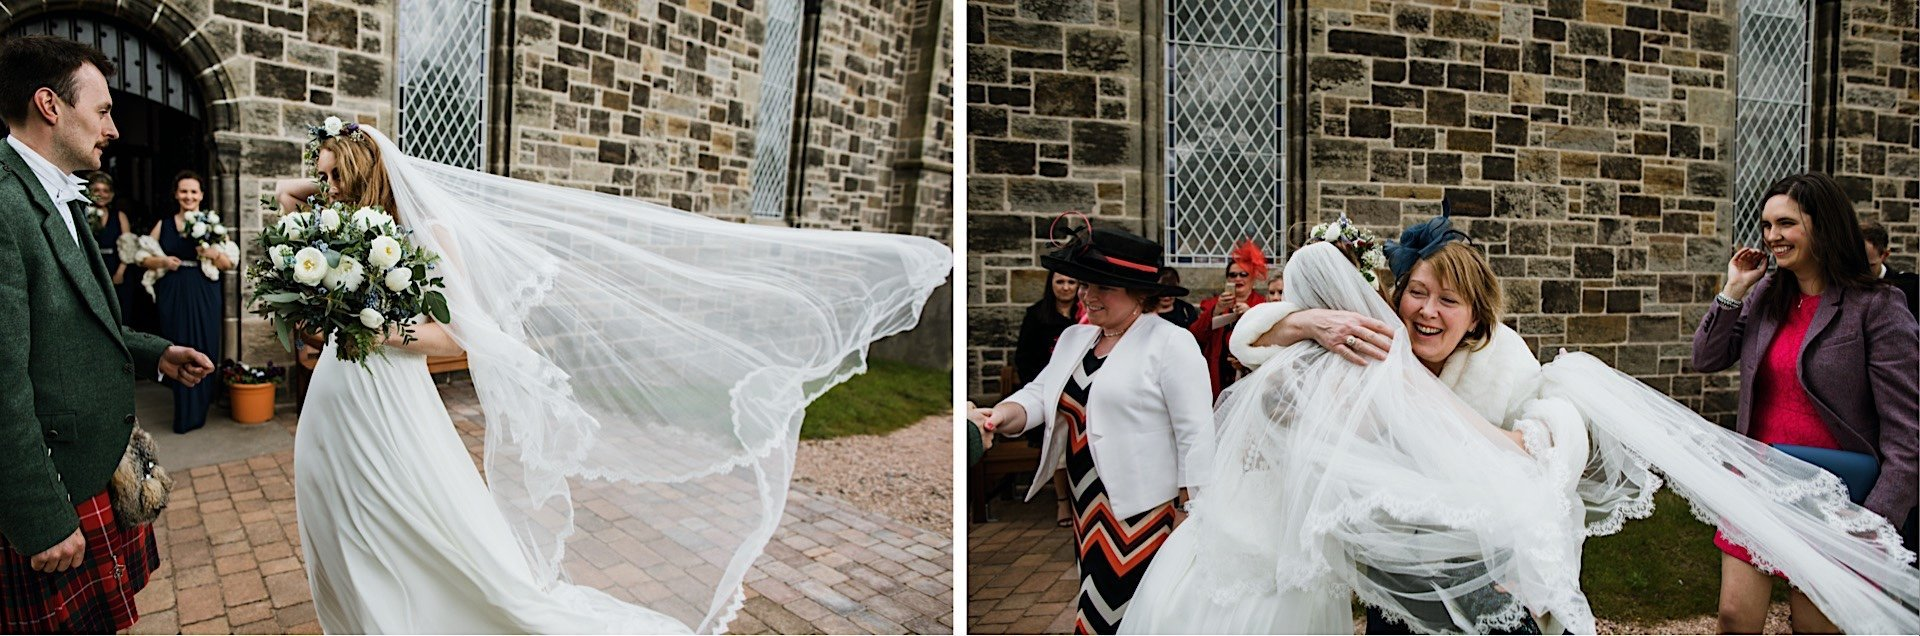 church in outside bride veil blowing guests the hugging Wind brides